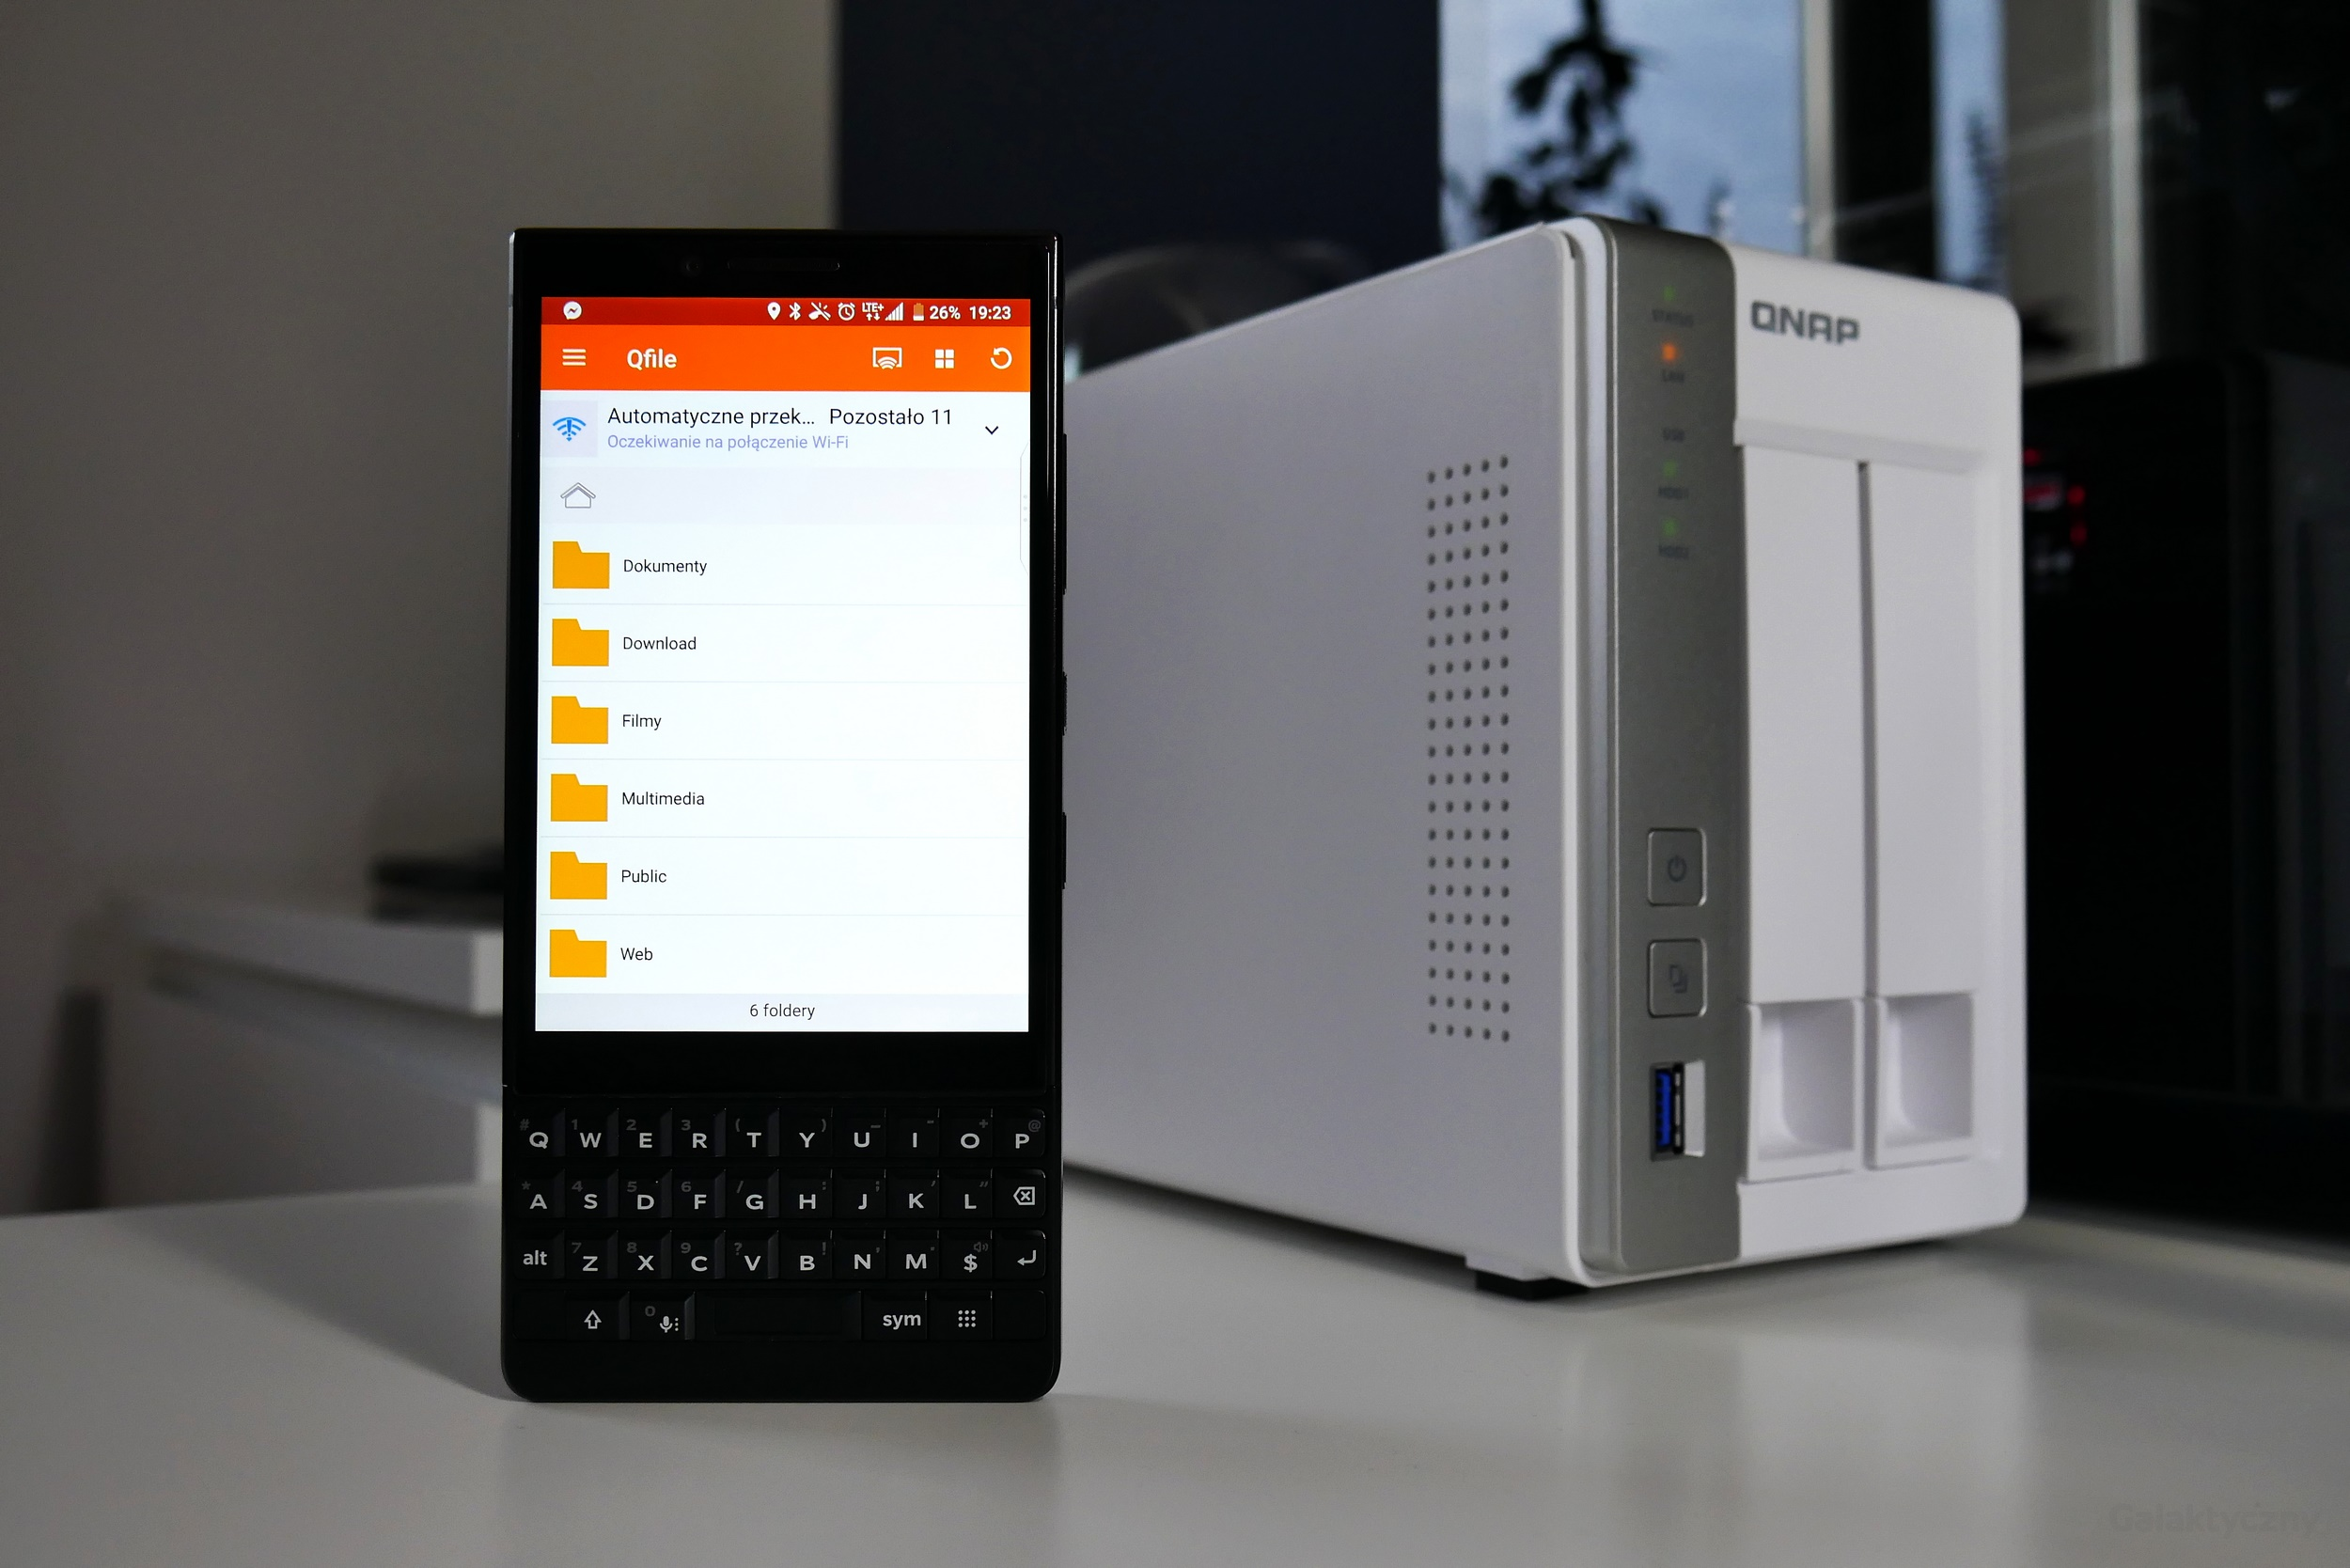 QNAP TS-231P2 - Qfile na BlackBerry KEY2